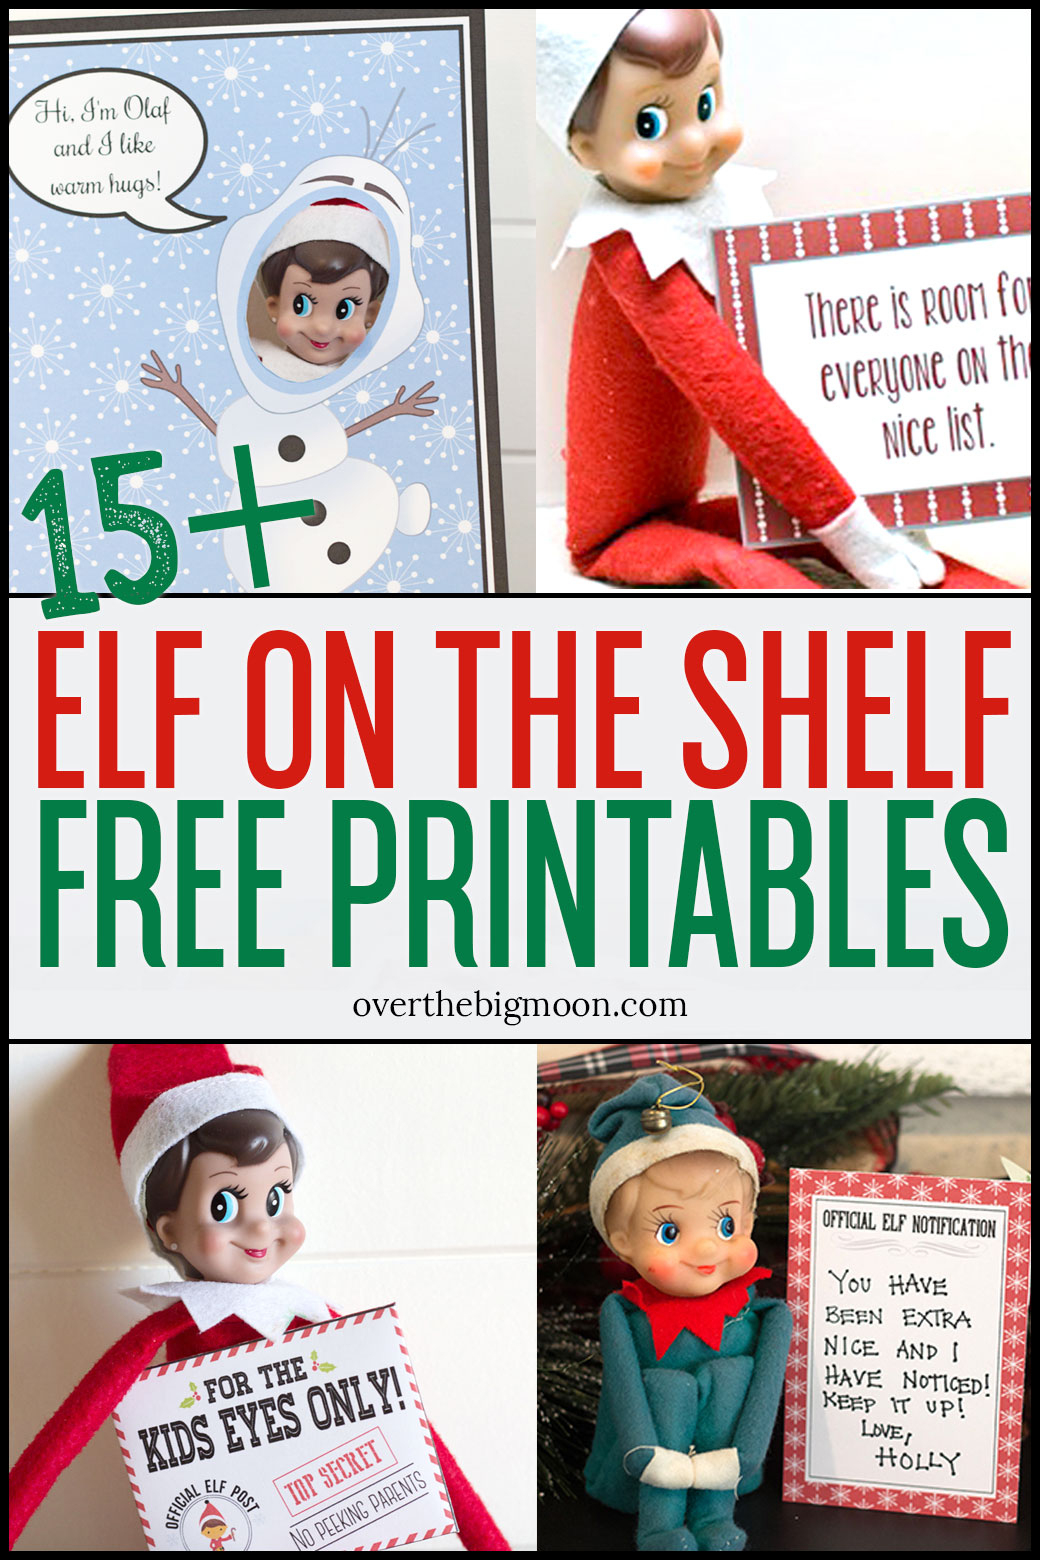 Elf On The Shelf Printables & Ideas - Over The Big Moon - Elf On The Shelf Free Printable Ideas